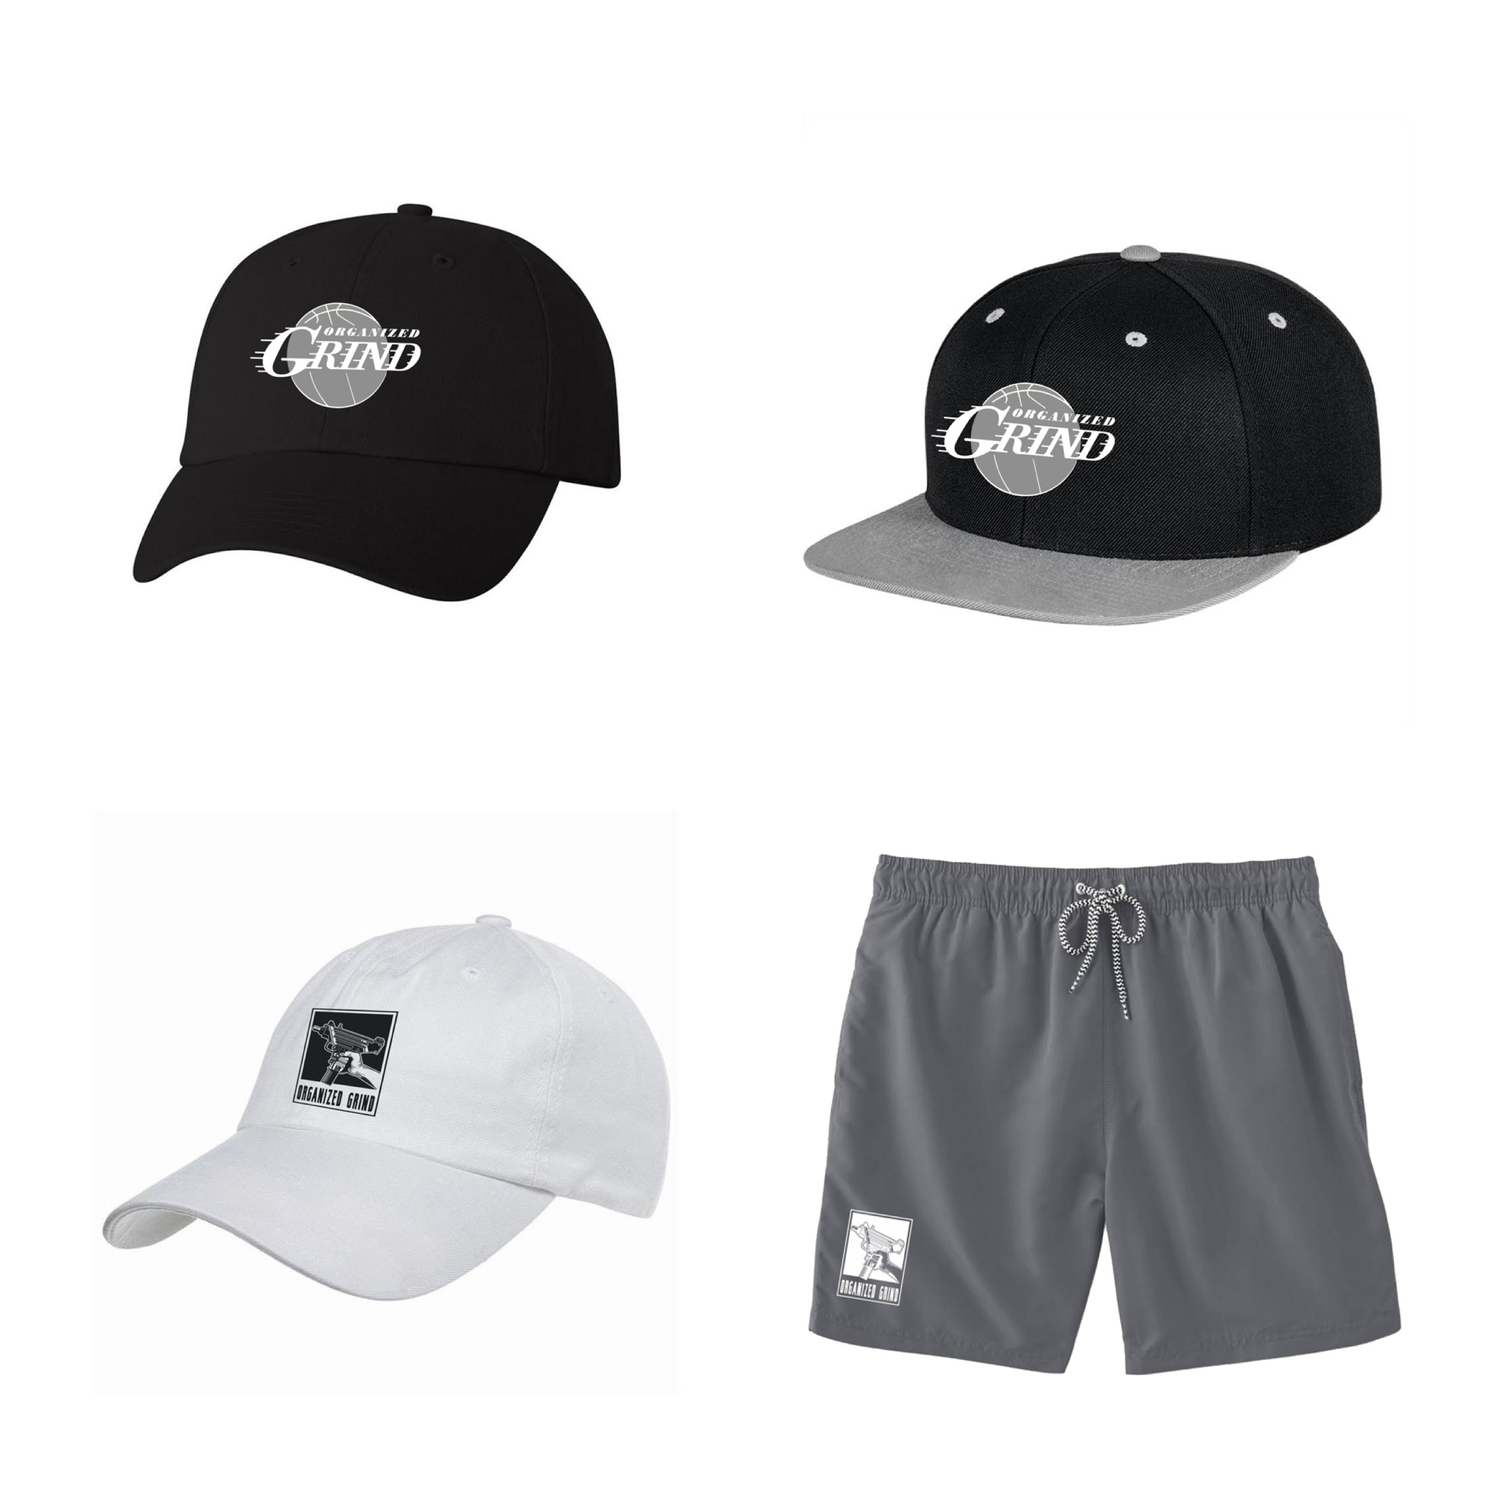 Image of New OG Summer Hats & Swimming Shorts